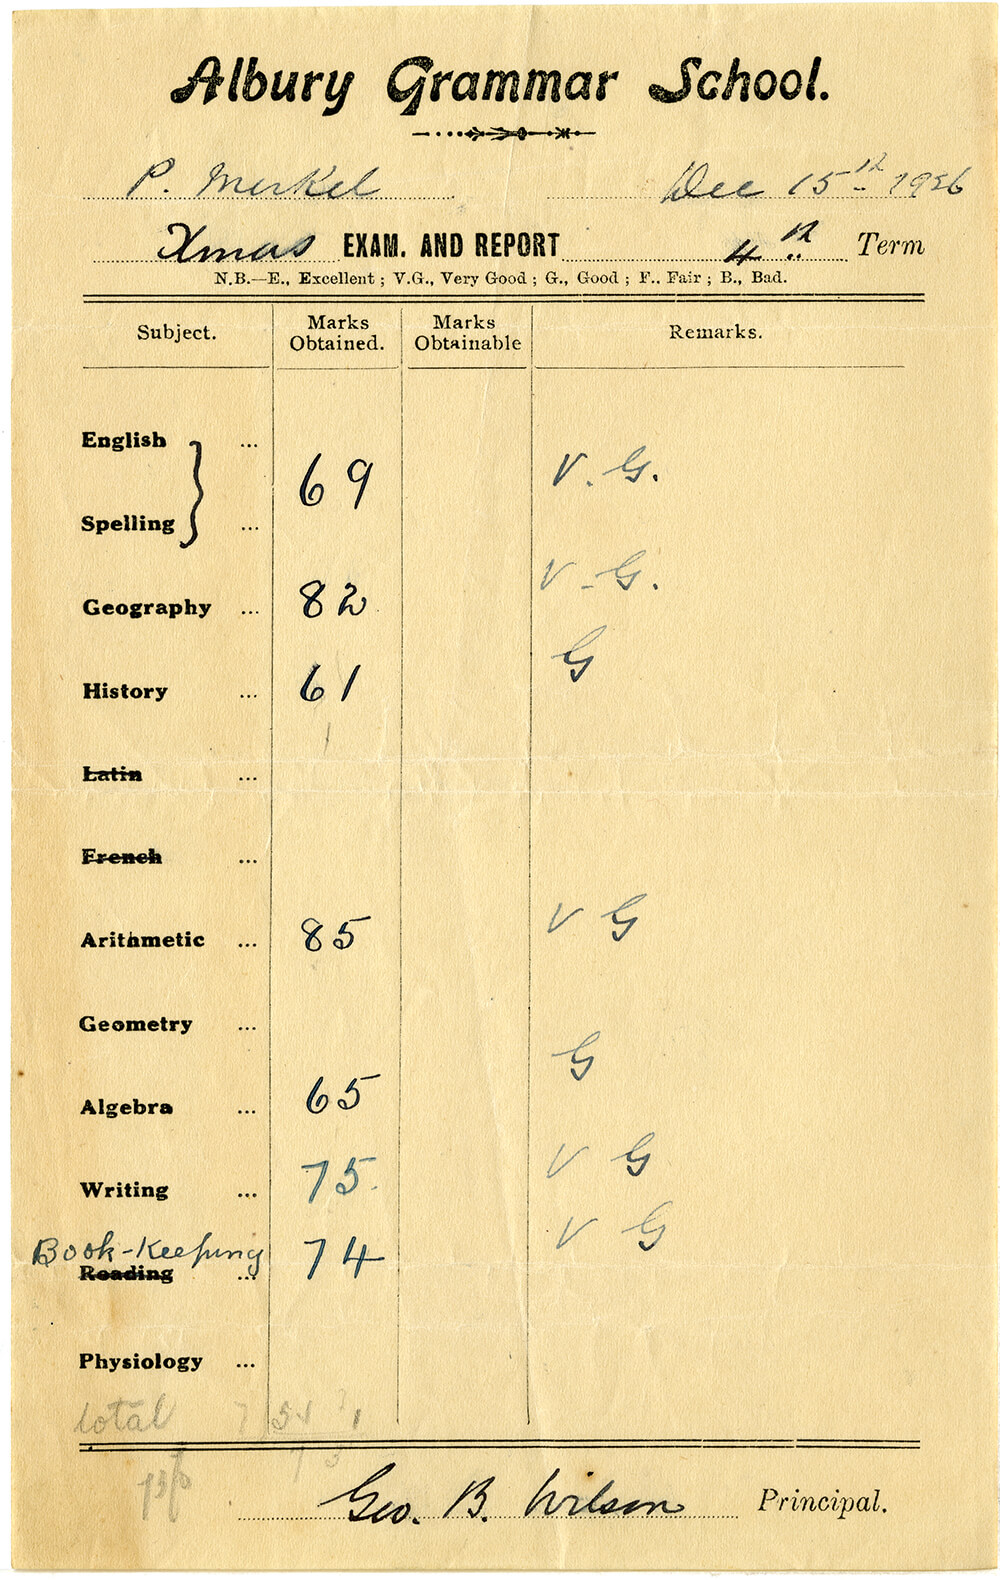 An exam and report slip for Phyllis Merkel at Albury Grammar School 4th Term 15 December 1926. It is a slip of paper with printed and pencilled text on one side. ARM 11.877.